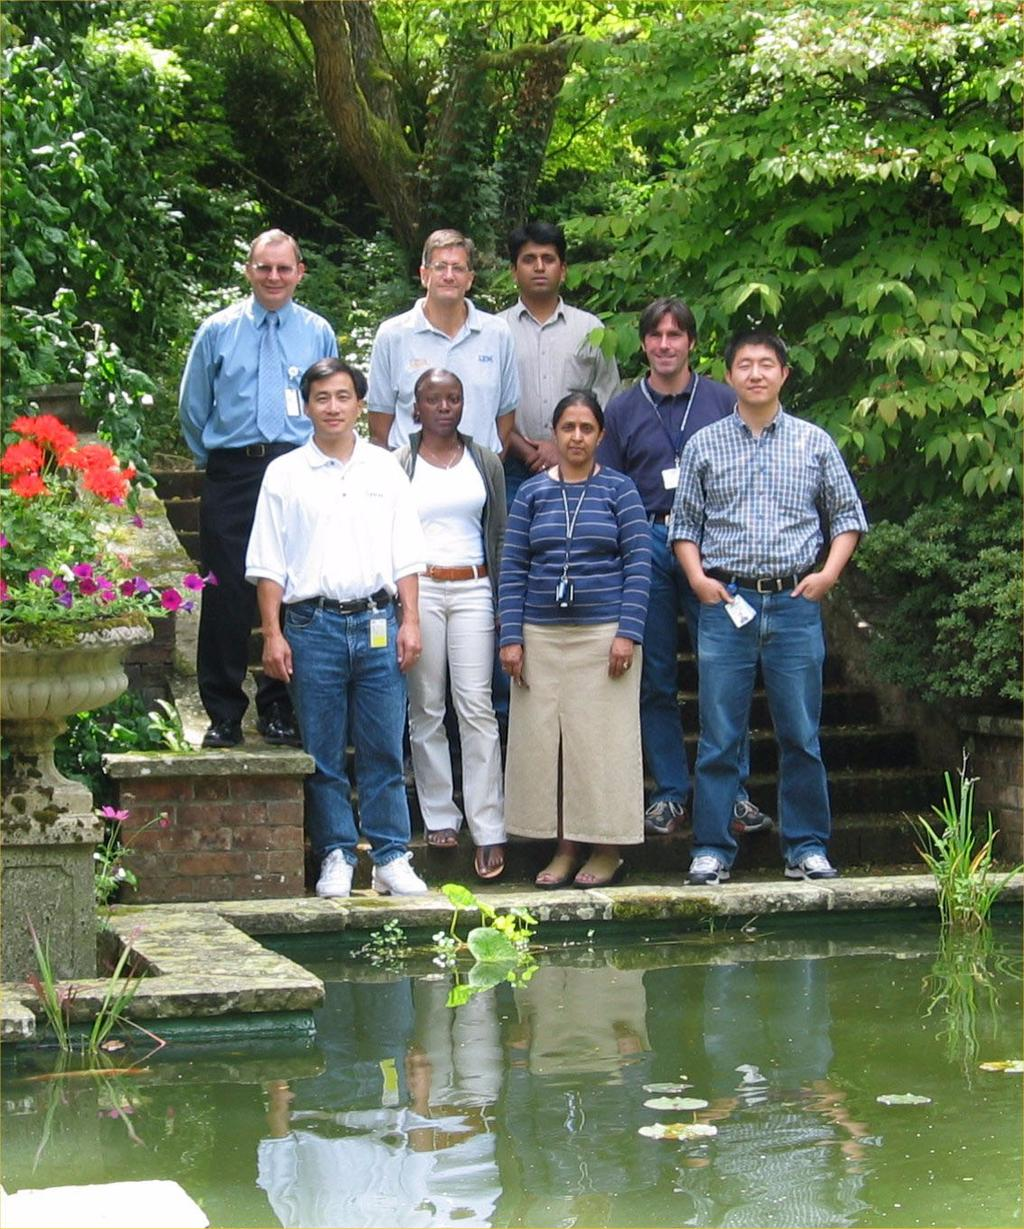 The authors Top row from left: Andrew, Jerry, Sachin, Michael Bottom row from left: Tony, Ope, Saida, Dong Kai Saida Davies is a Project Leader for ITSO Hursley UK.